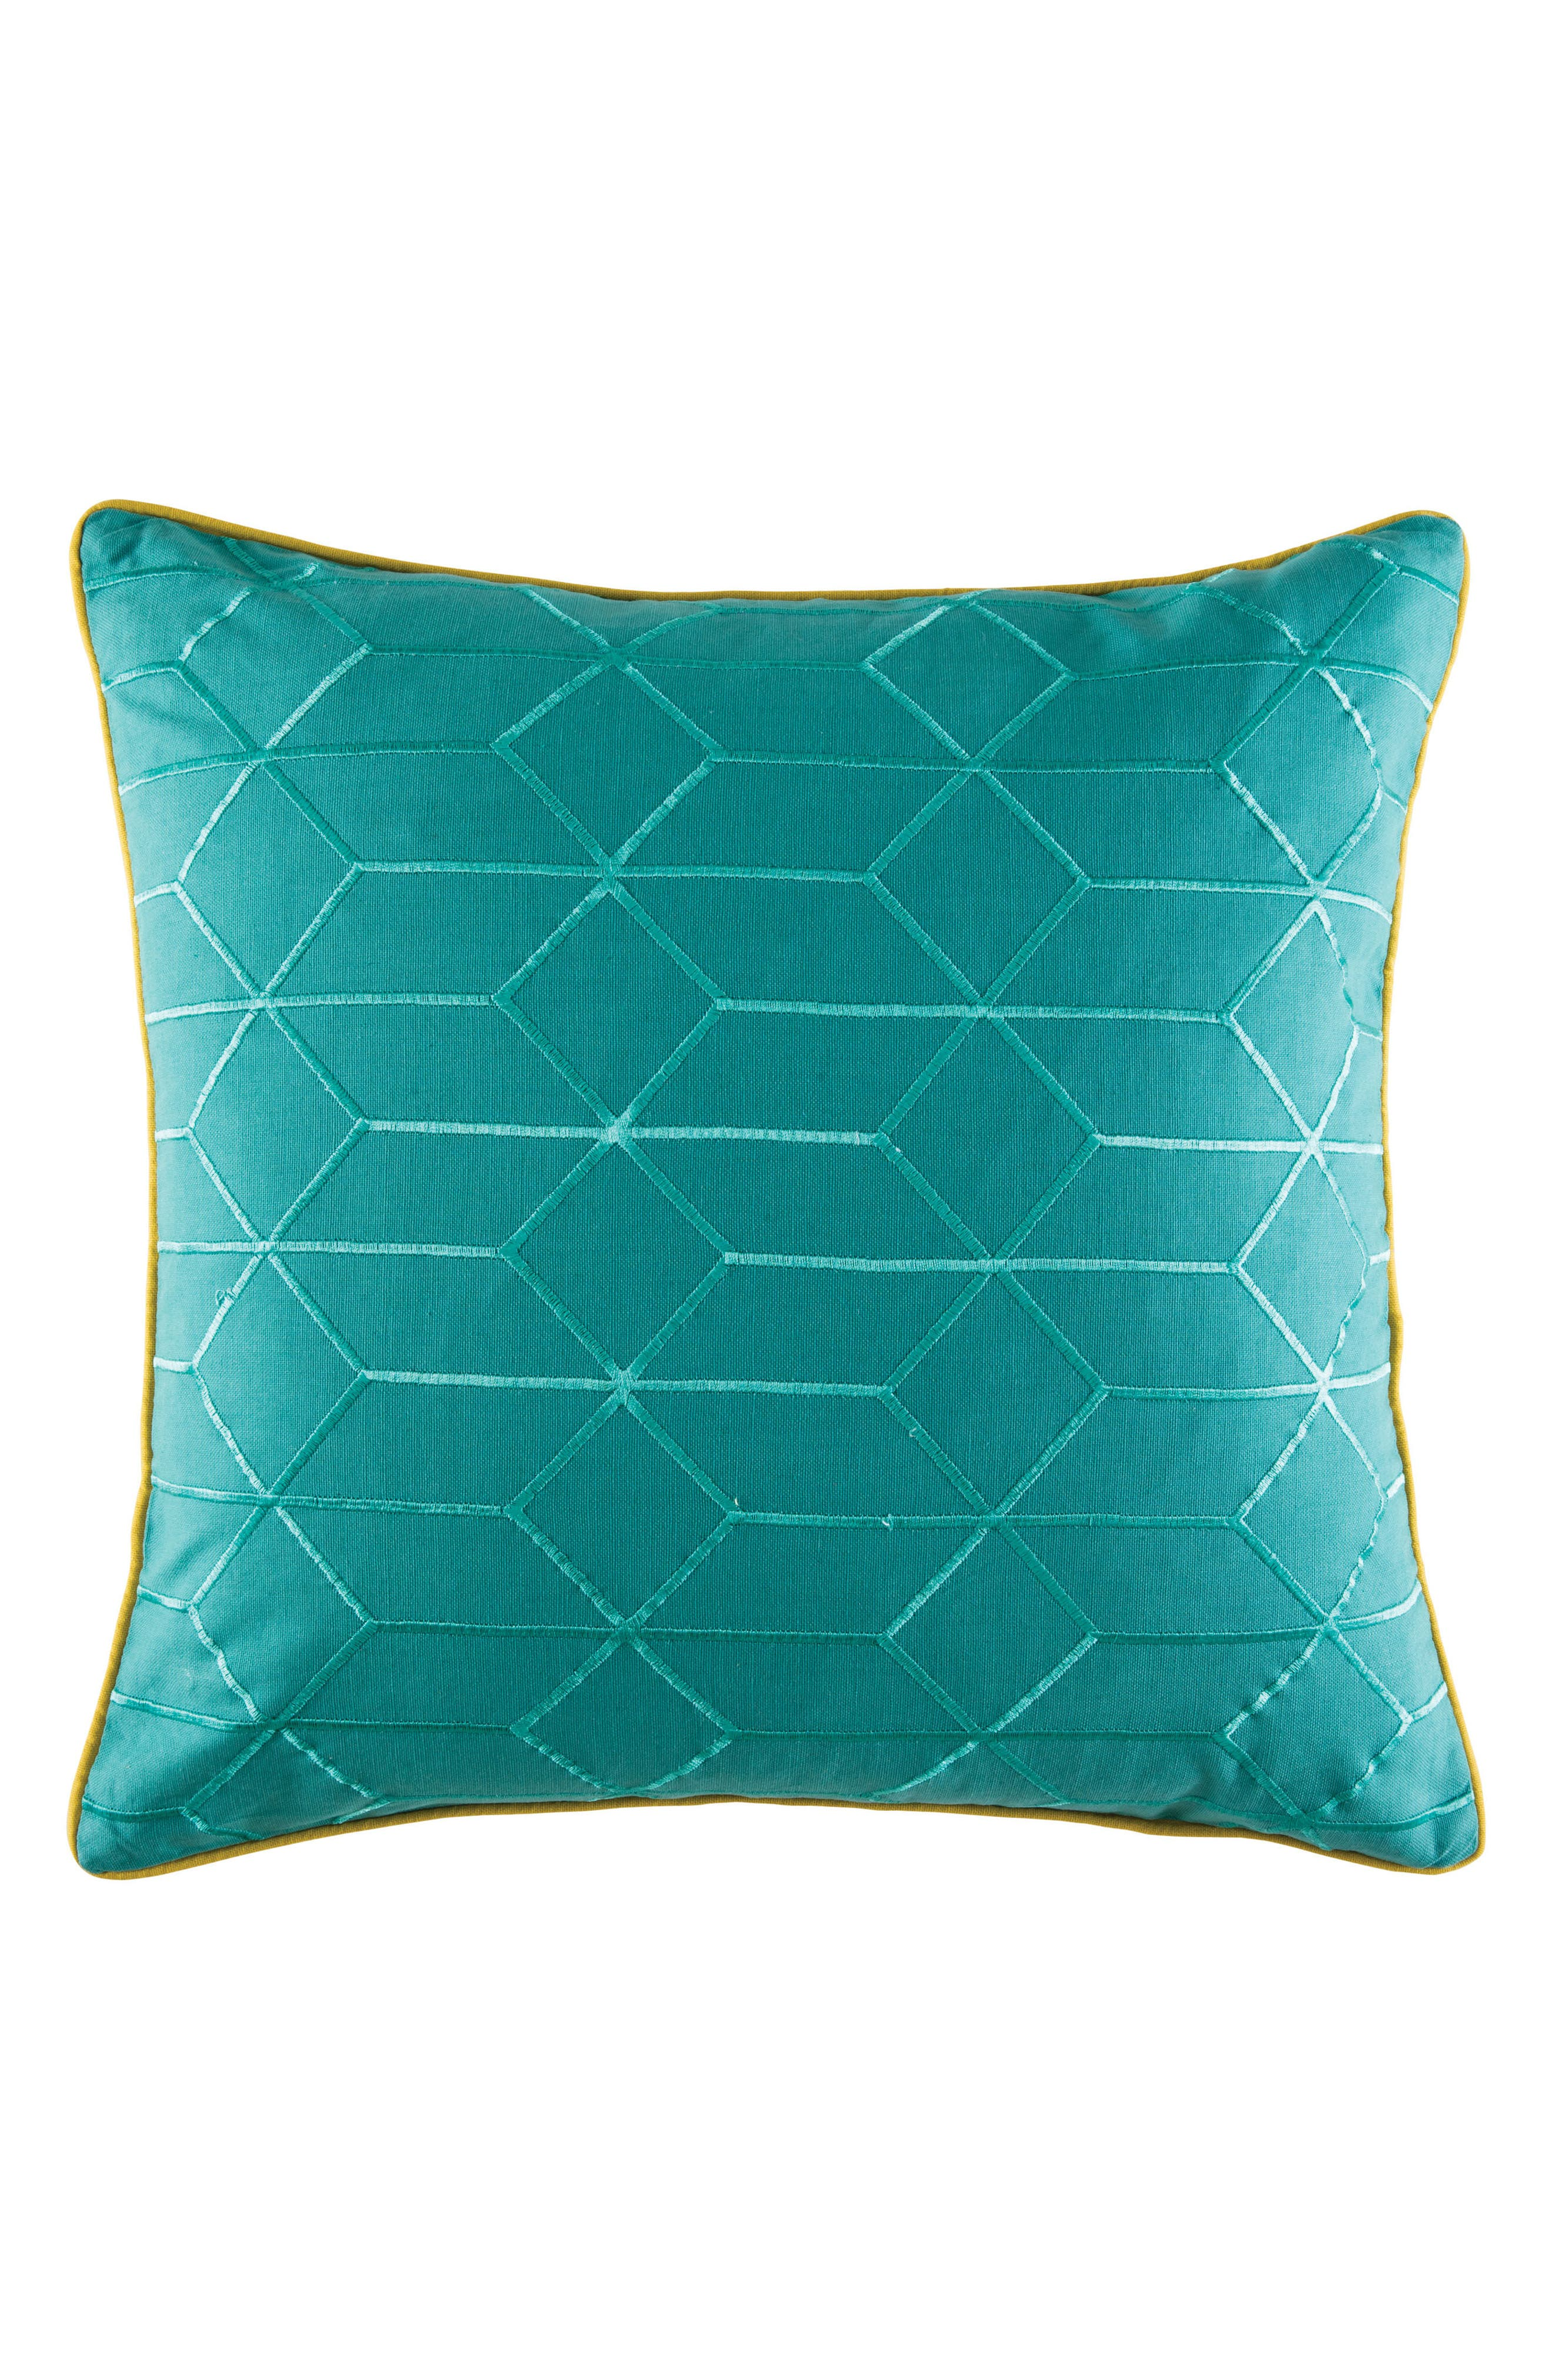 Alternate Image 1 Selected - KAS Designs Muse Decorative Pillow